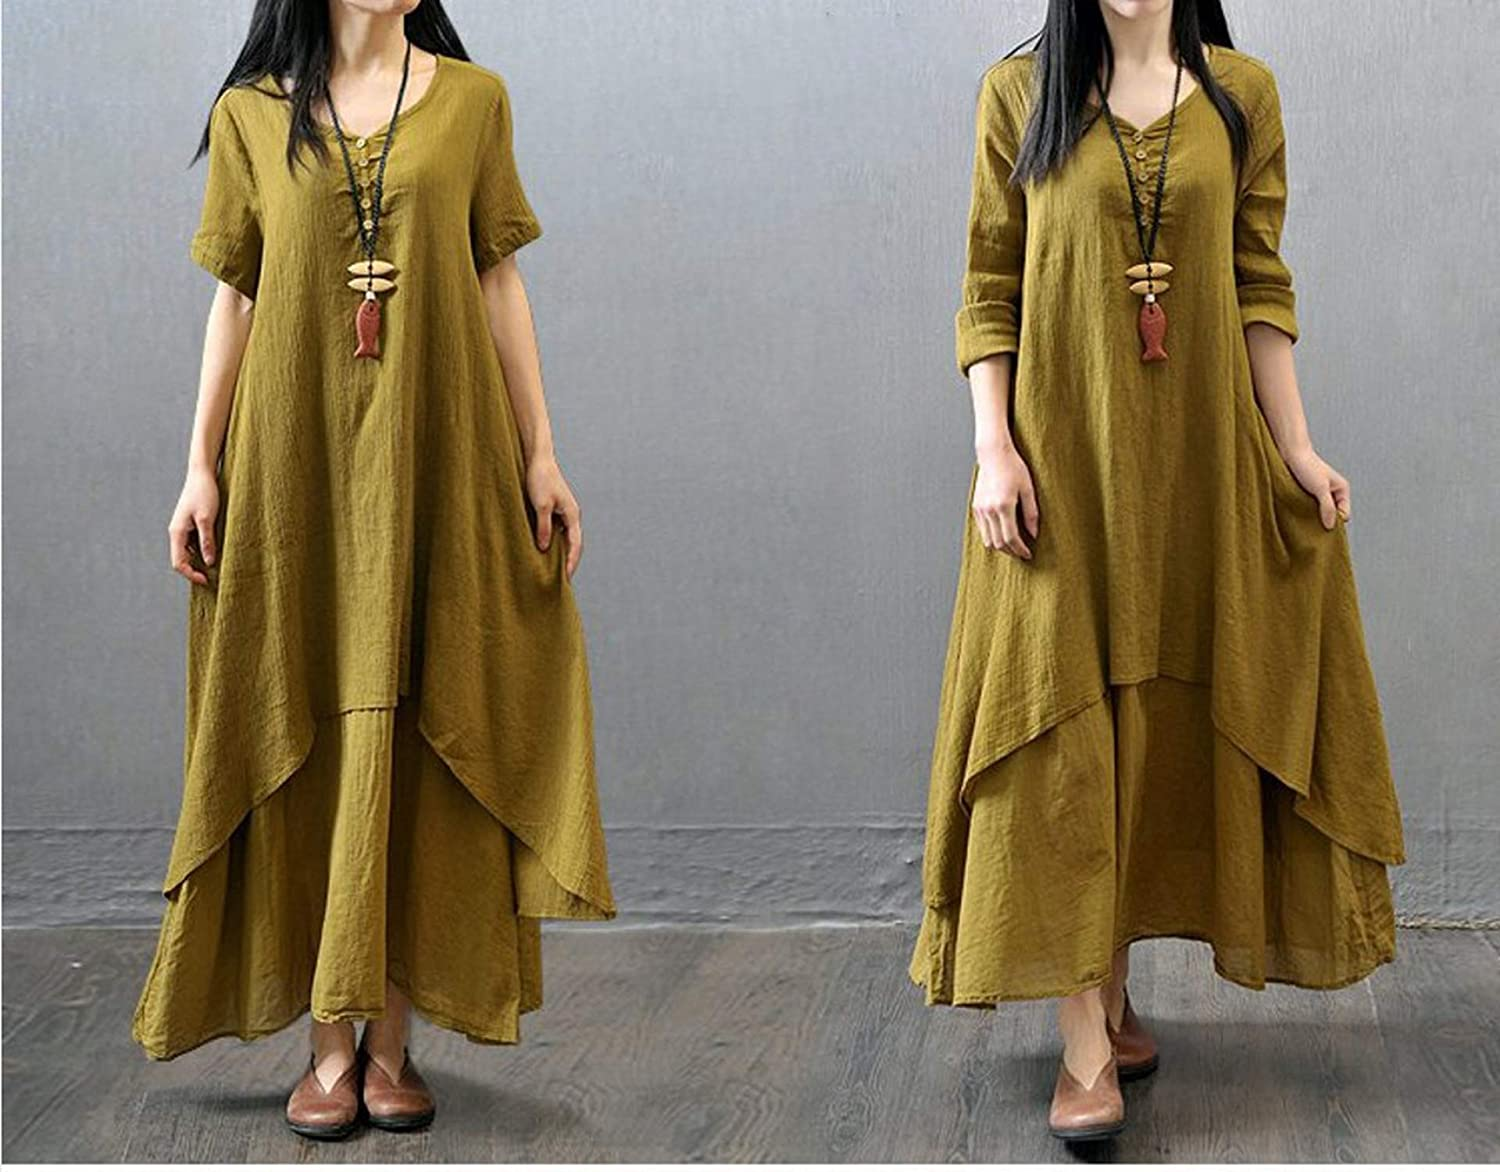 fc78f5aba8e Dreamedge Large Size Women s Ethnic Cotton and Linen Dresses Summer Fake  Two Large Swing Skirts at Amazon Women s Clothing store